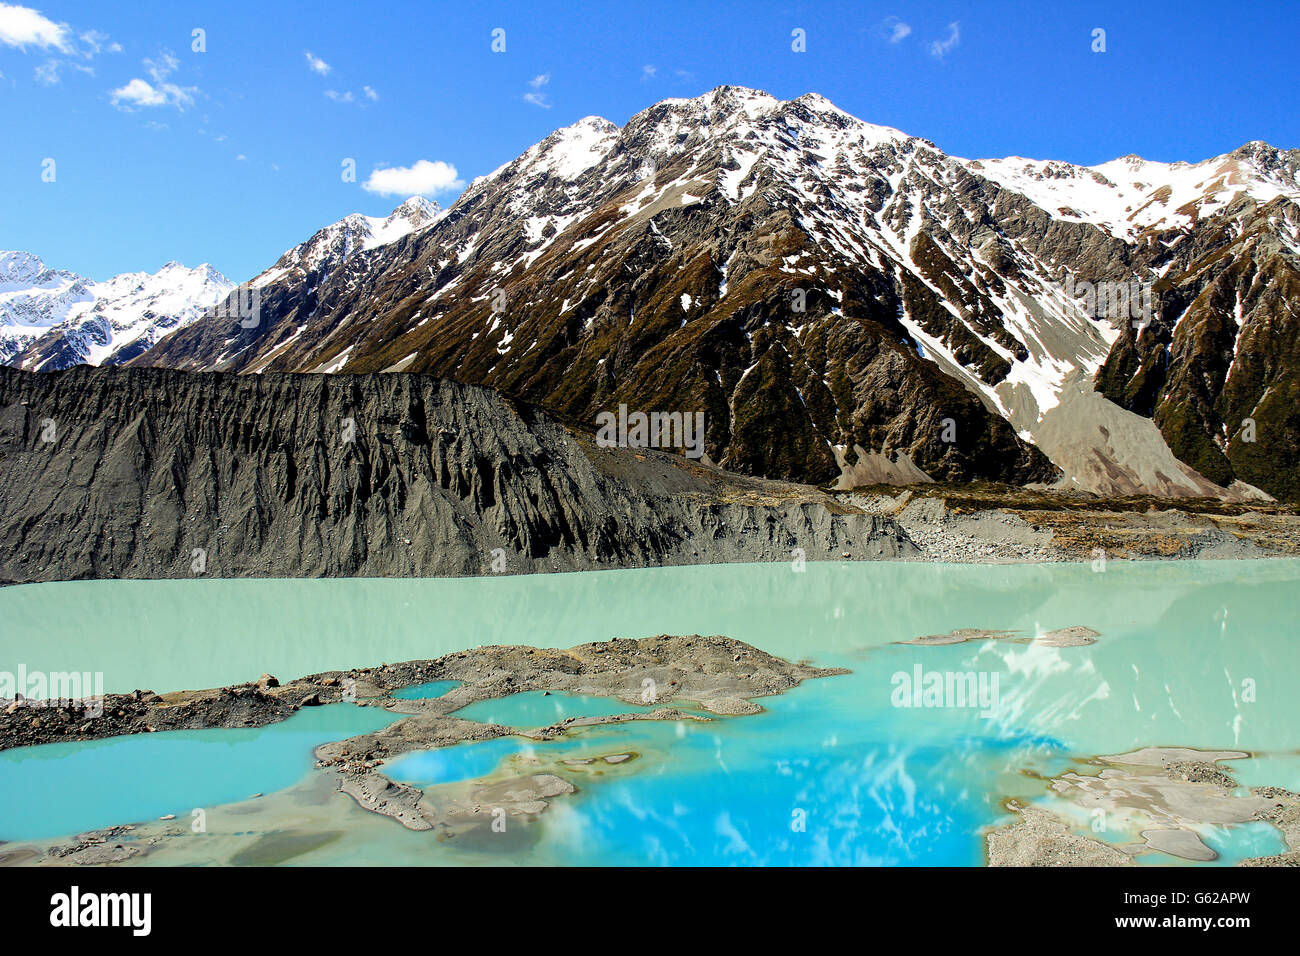 Mueller Lake in Mount Cook national park in New Zealand - Stock Image